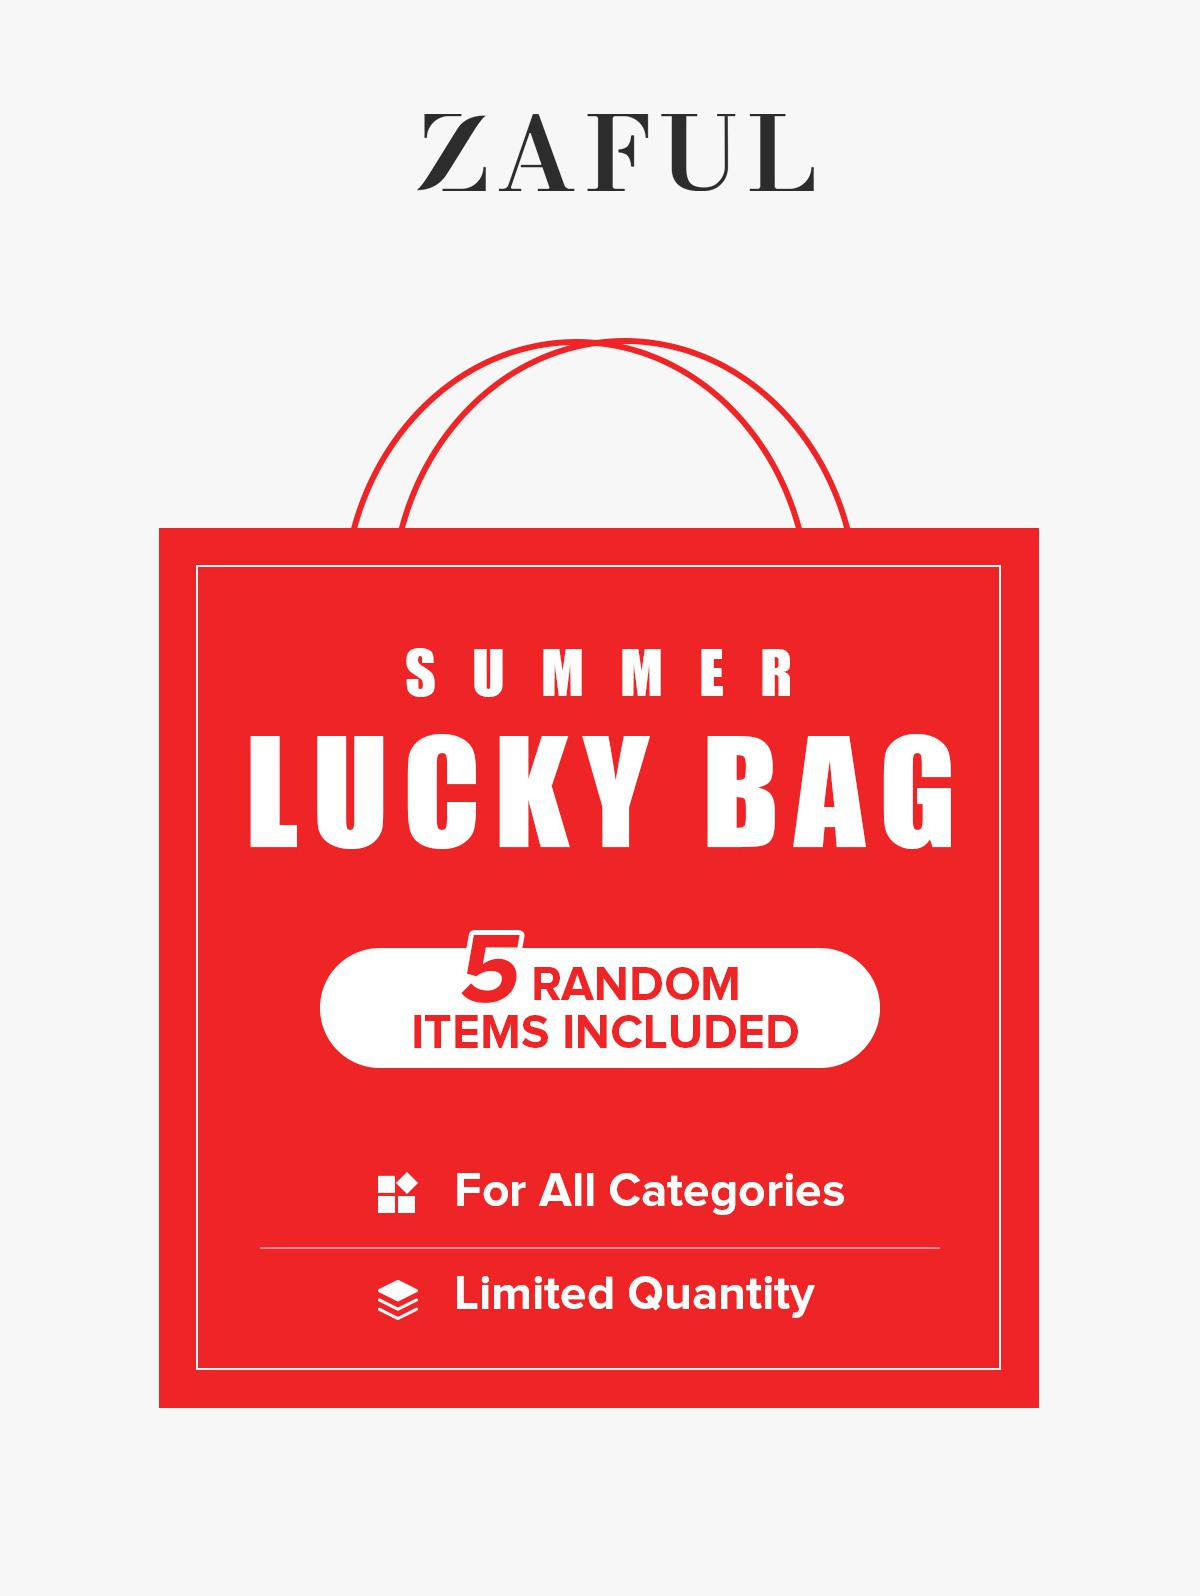 ZAFUL Summer Lucky Bag - 5 Random Items Included - For All Categories - Limited Quantity